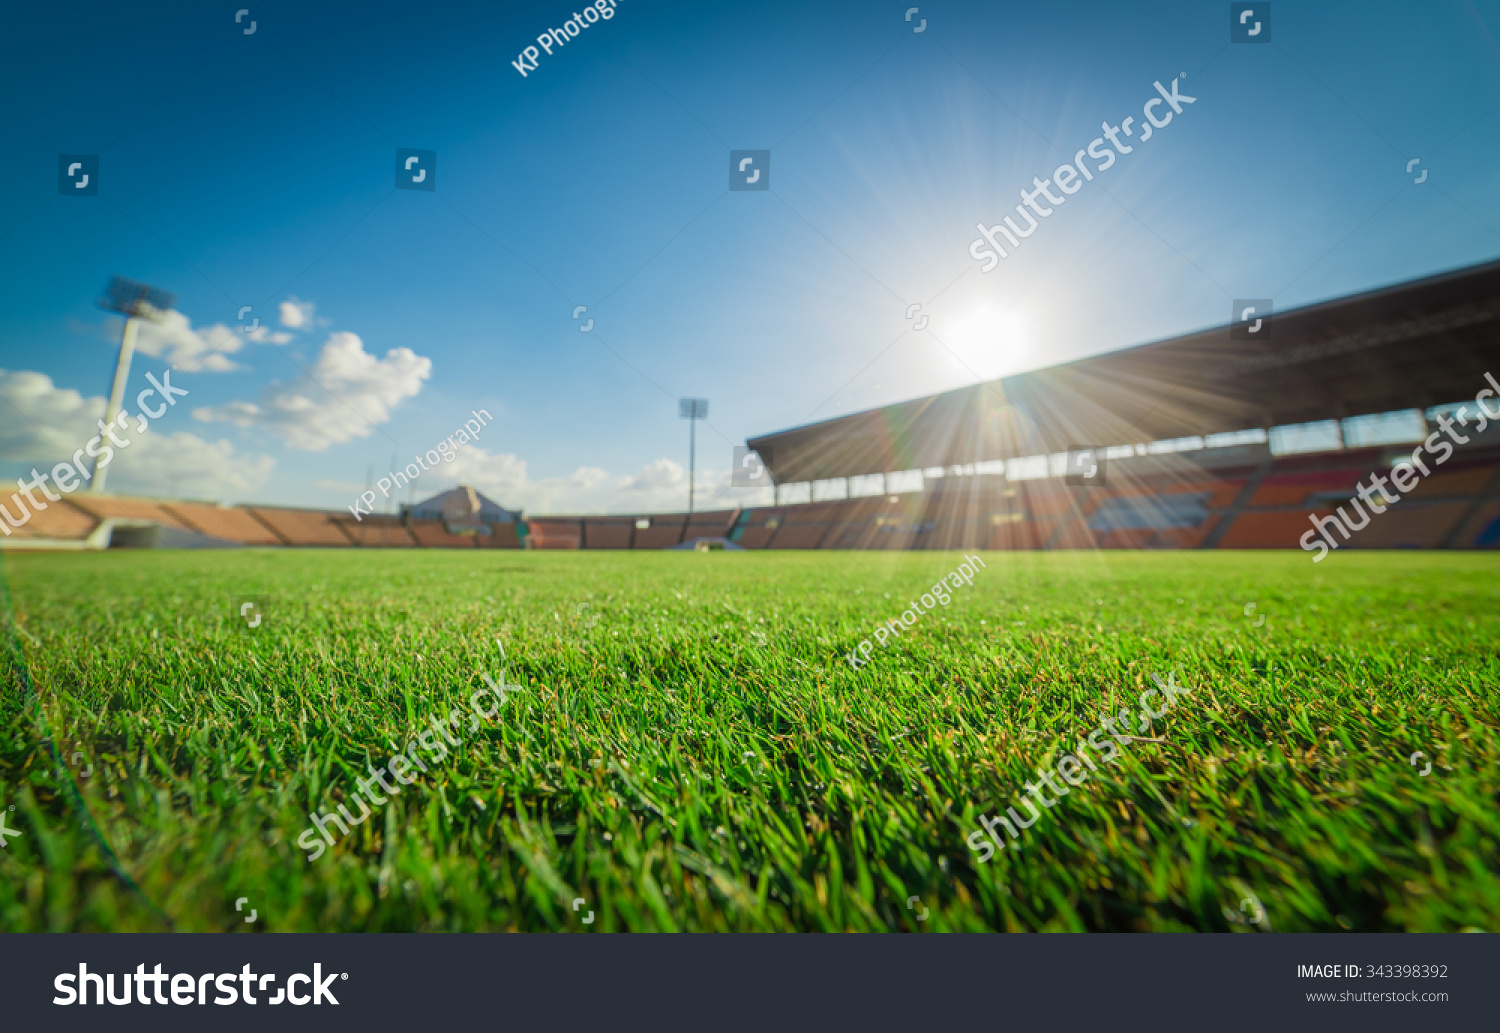 Soccer Football On Green Field With Blue Sky Background: Green Grass Soccer Stadium Soccer Field Stock Photo